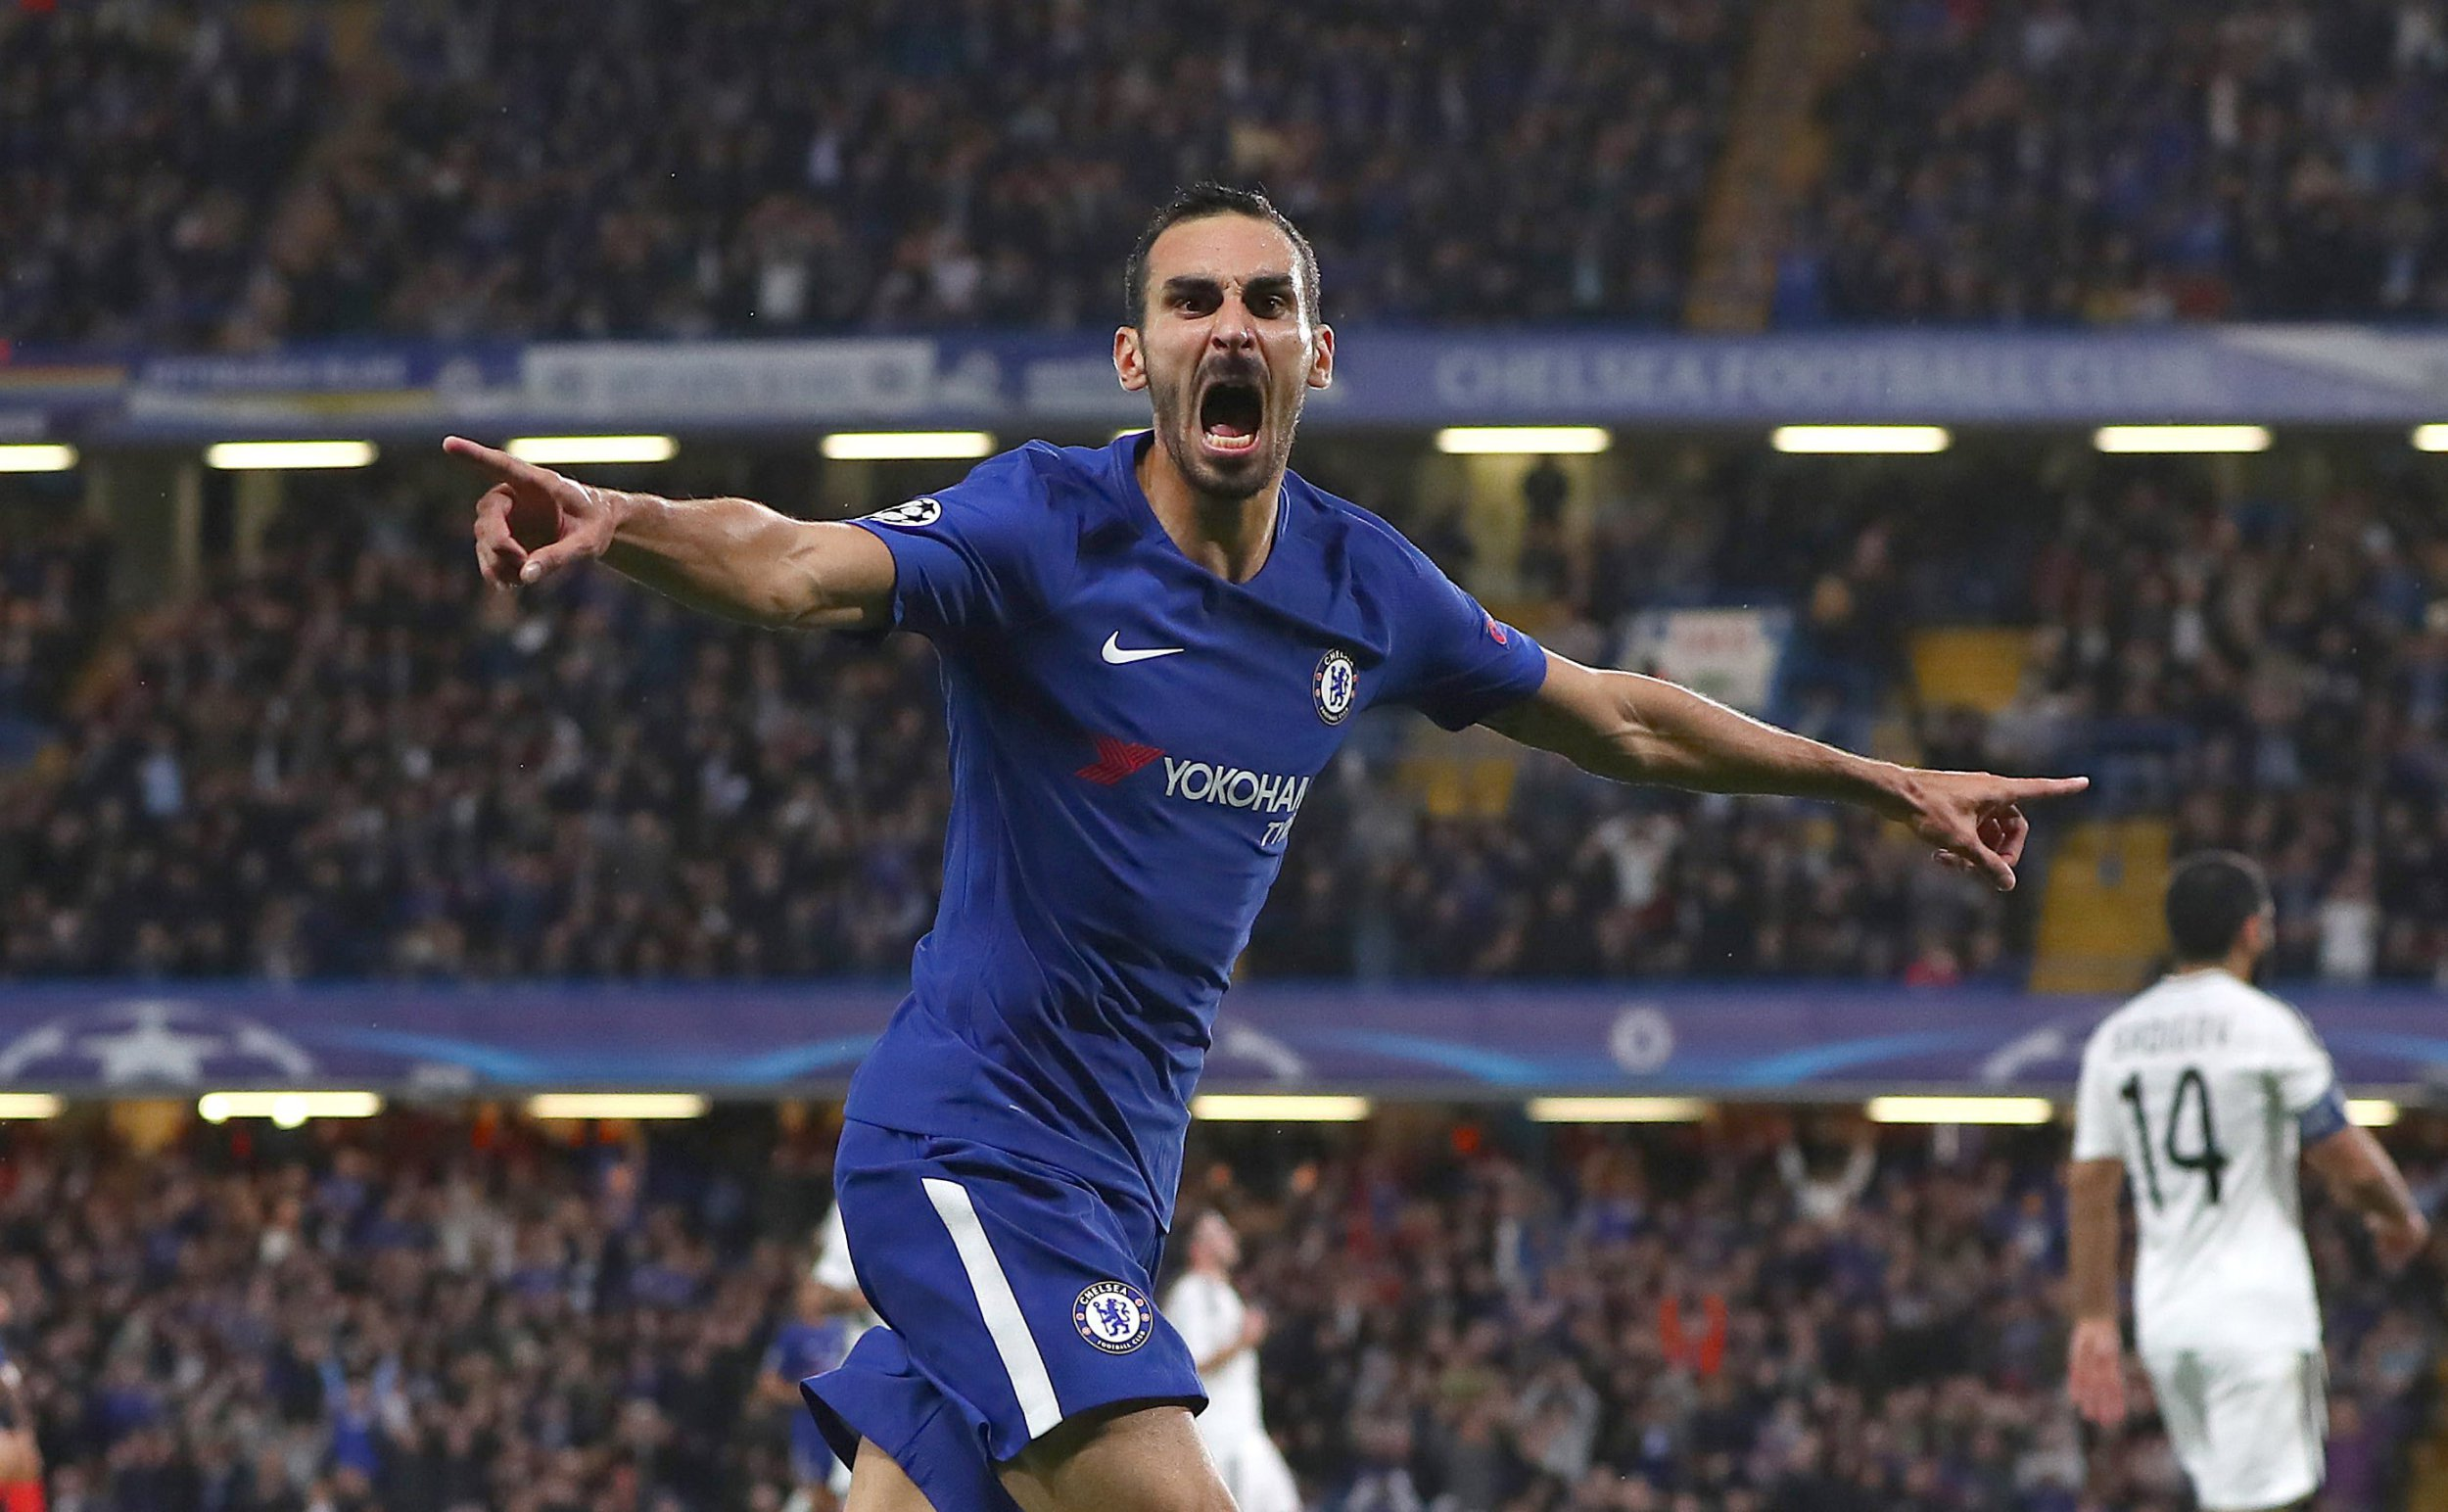 Victor Moses mocked by Chelsea teammates on bench after Davide Zappacosta's goal